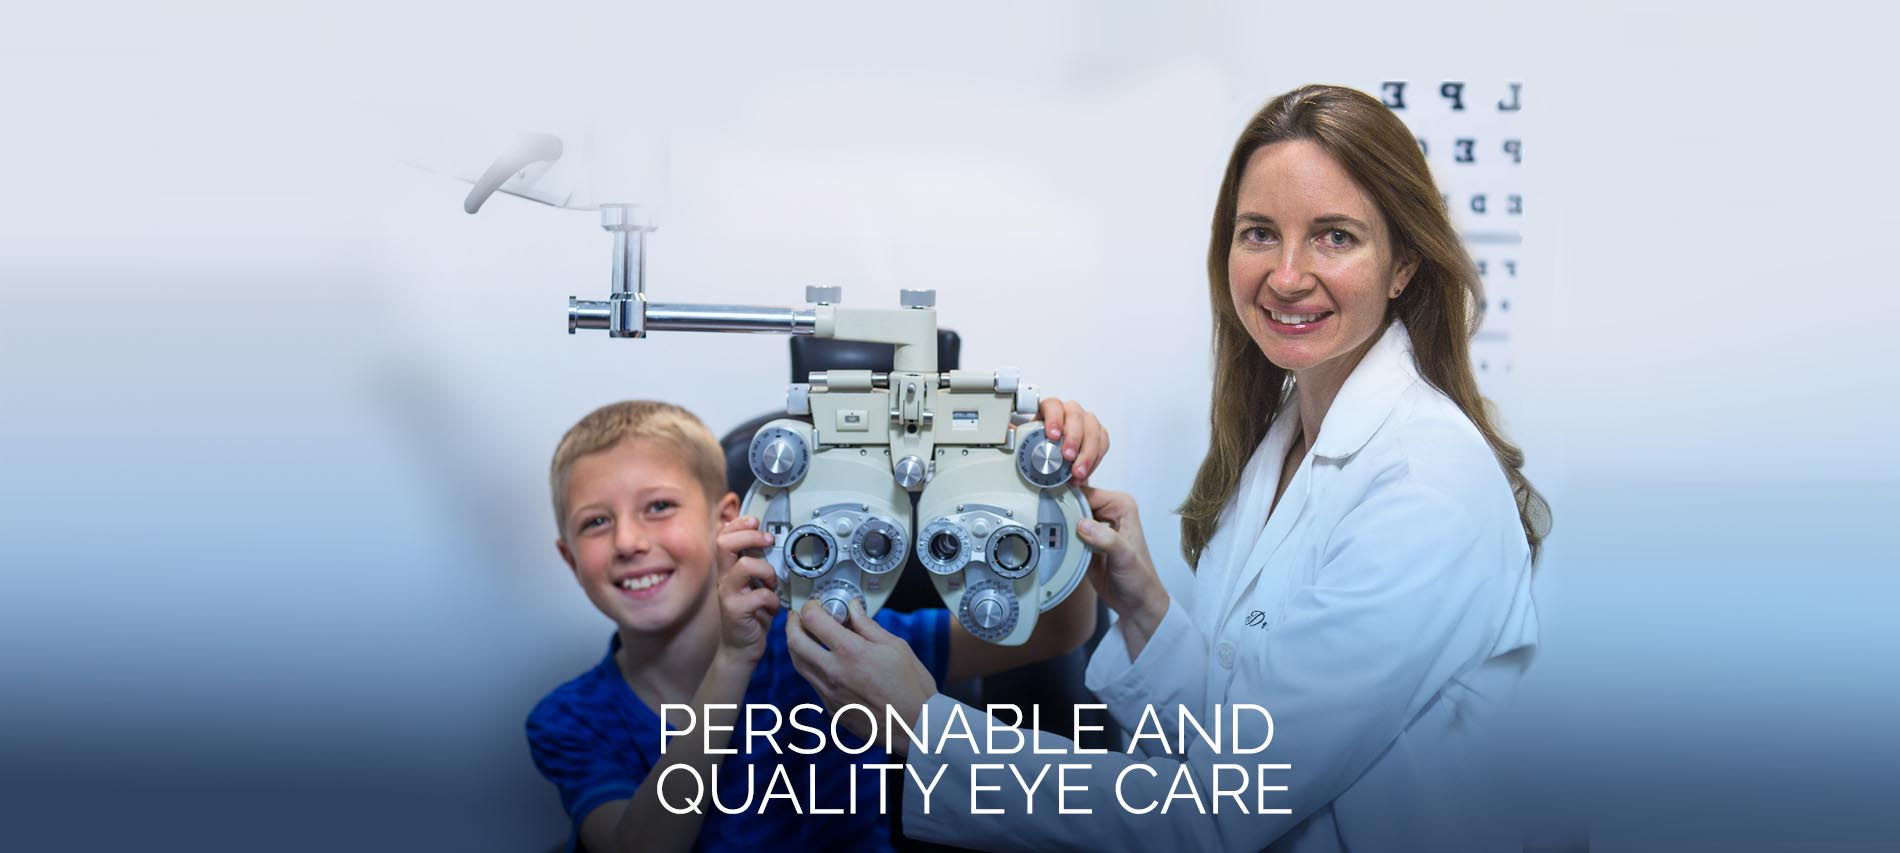 Dr. Ely and young boy in eye exam